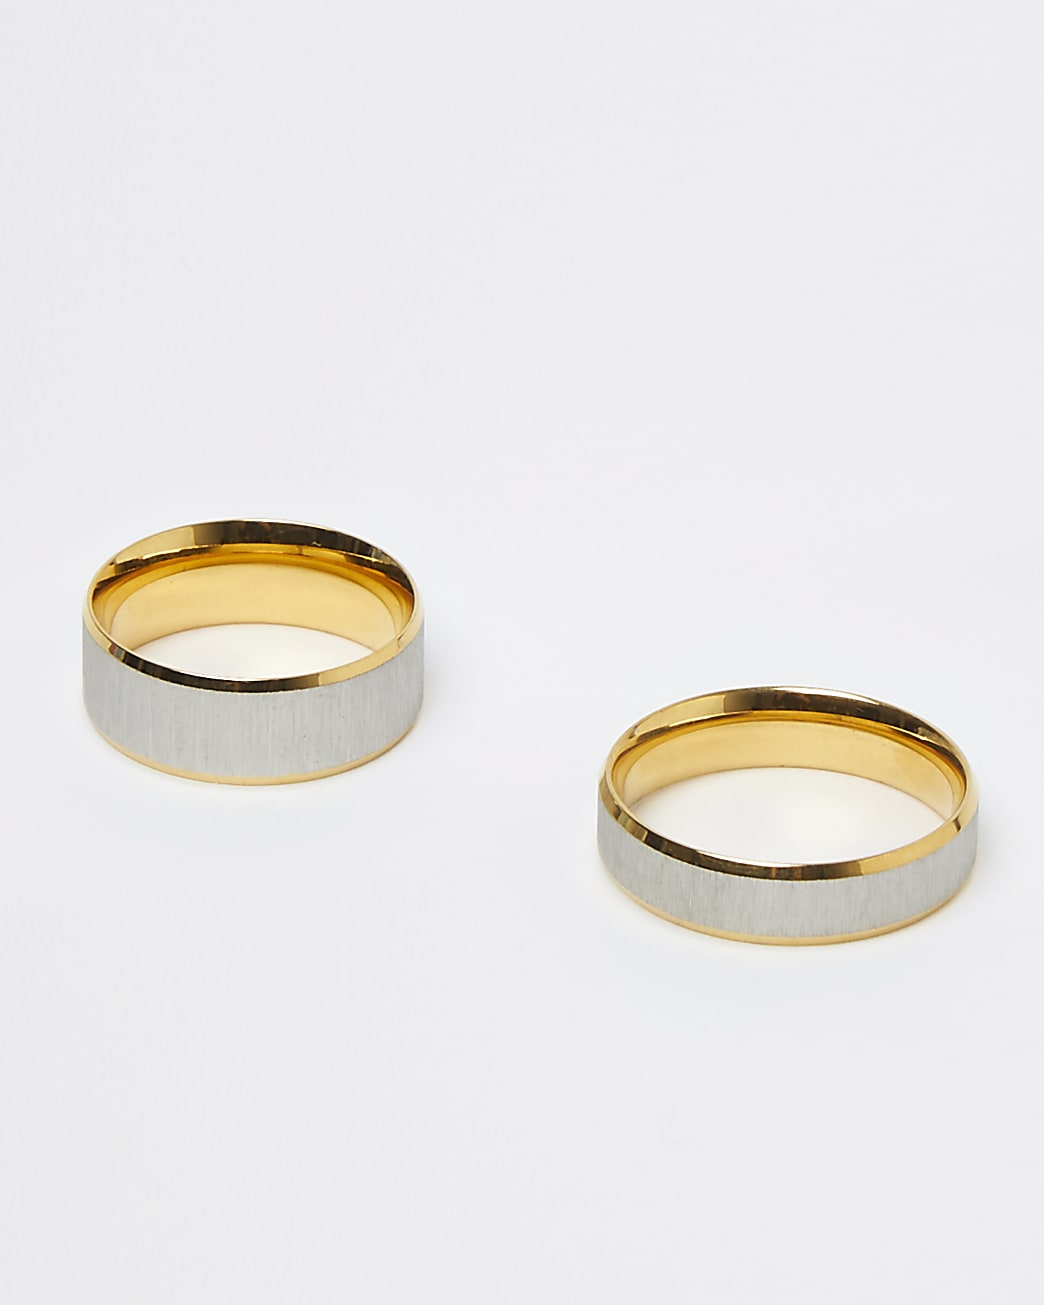 Gold mixed metal band rings 2 pack